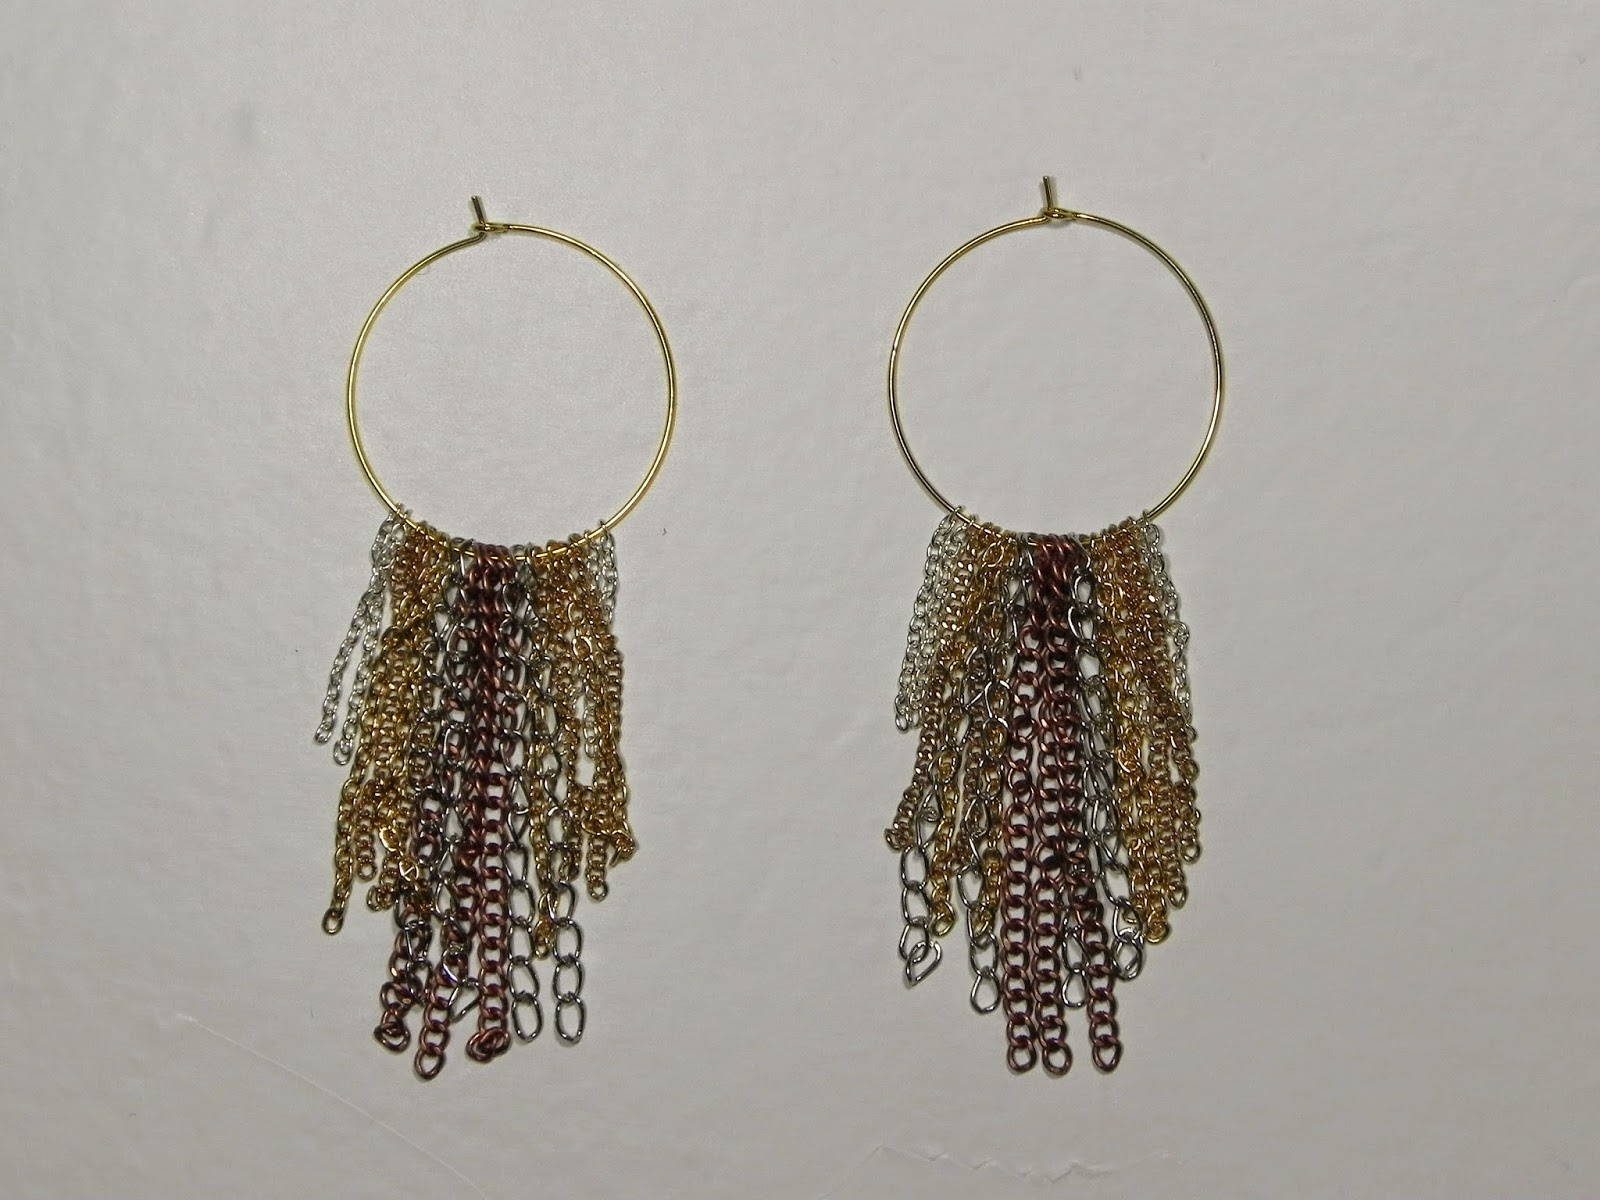 Smart n snazzy: DIY ~ chain fringe earrings